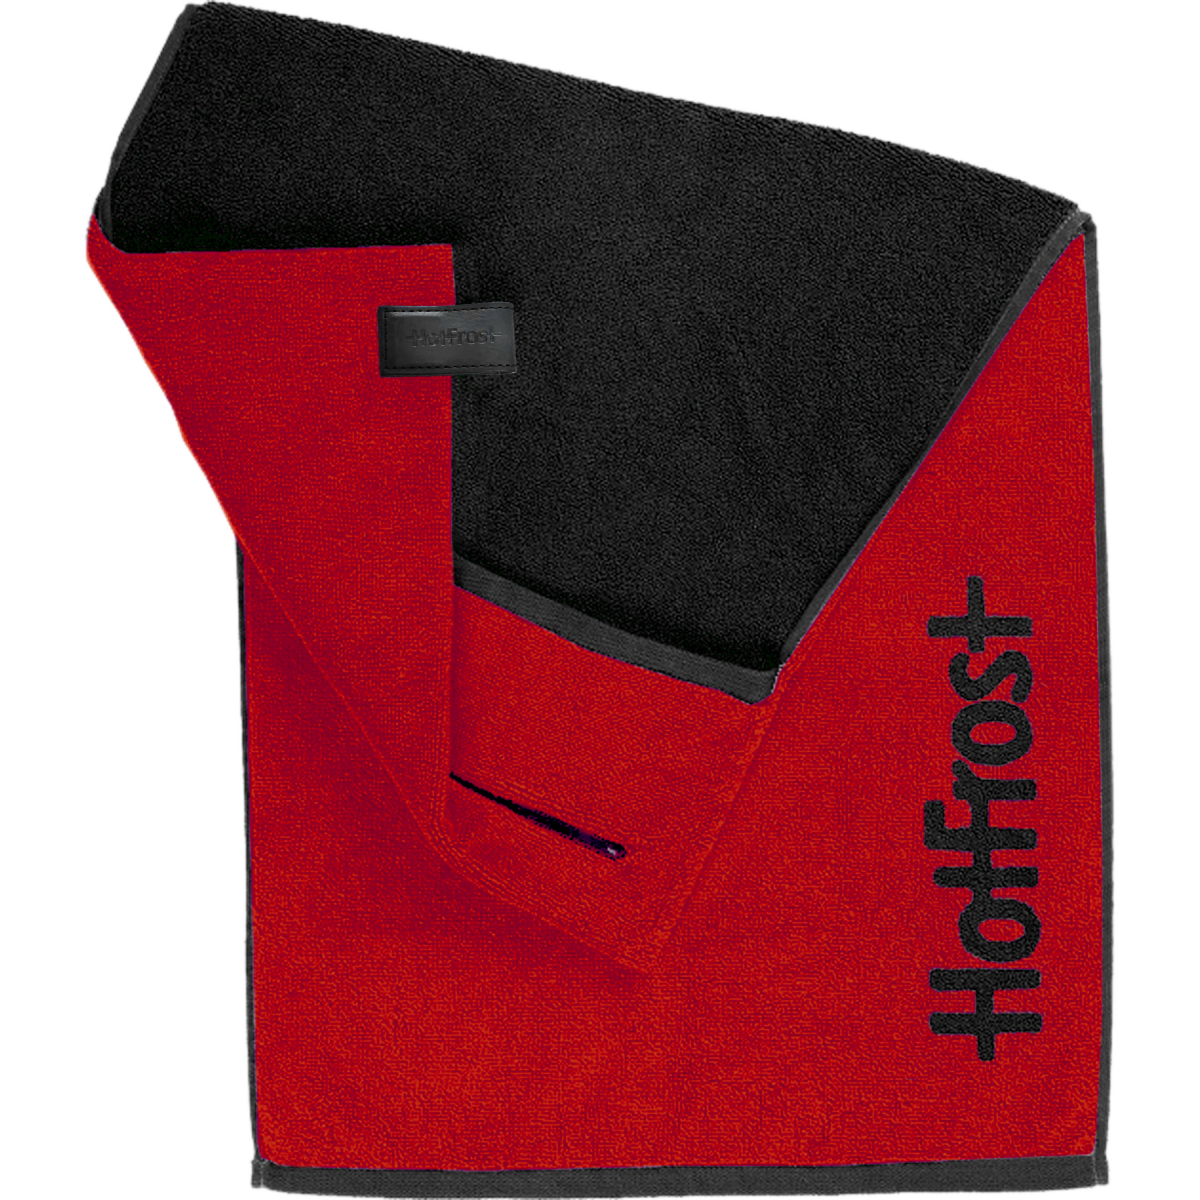 Fitness towel (40*85 cm, red)